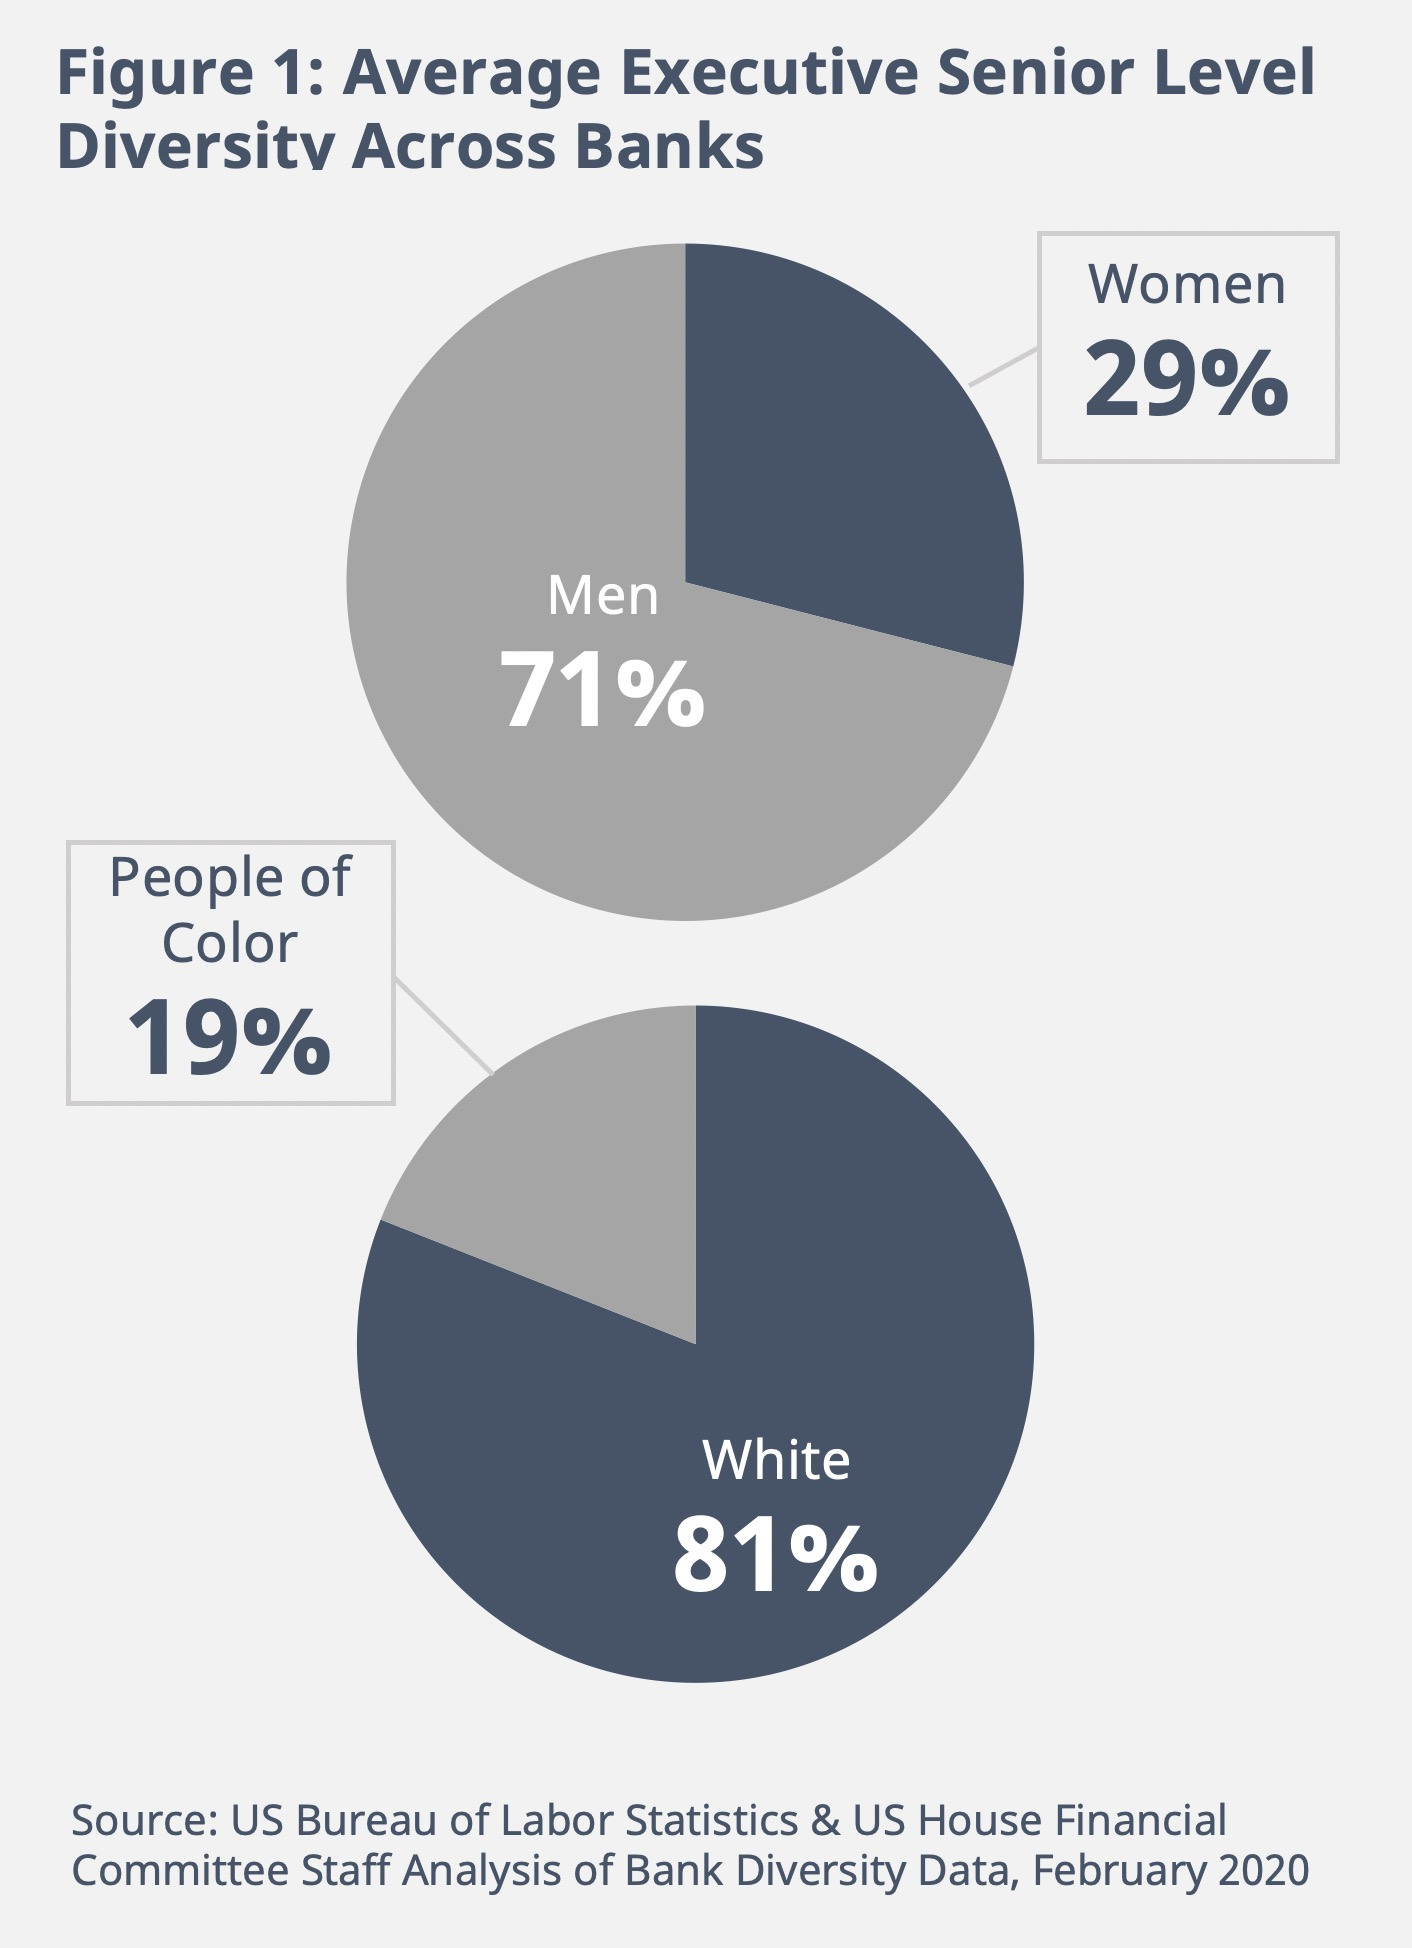 Figure 1: Average Executive Senior Level Diversity Across Banks. 71% are men, and 81% are white.